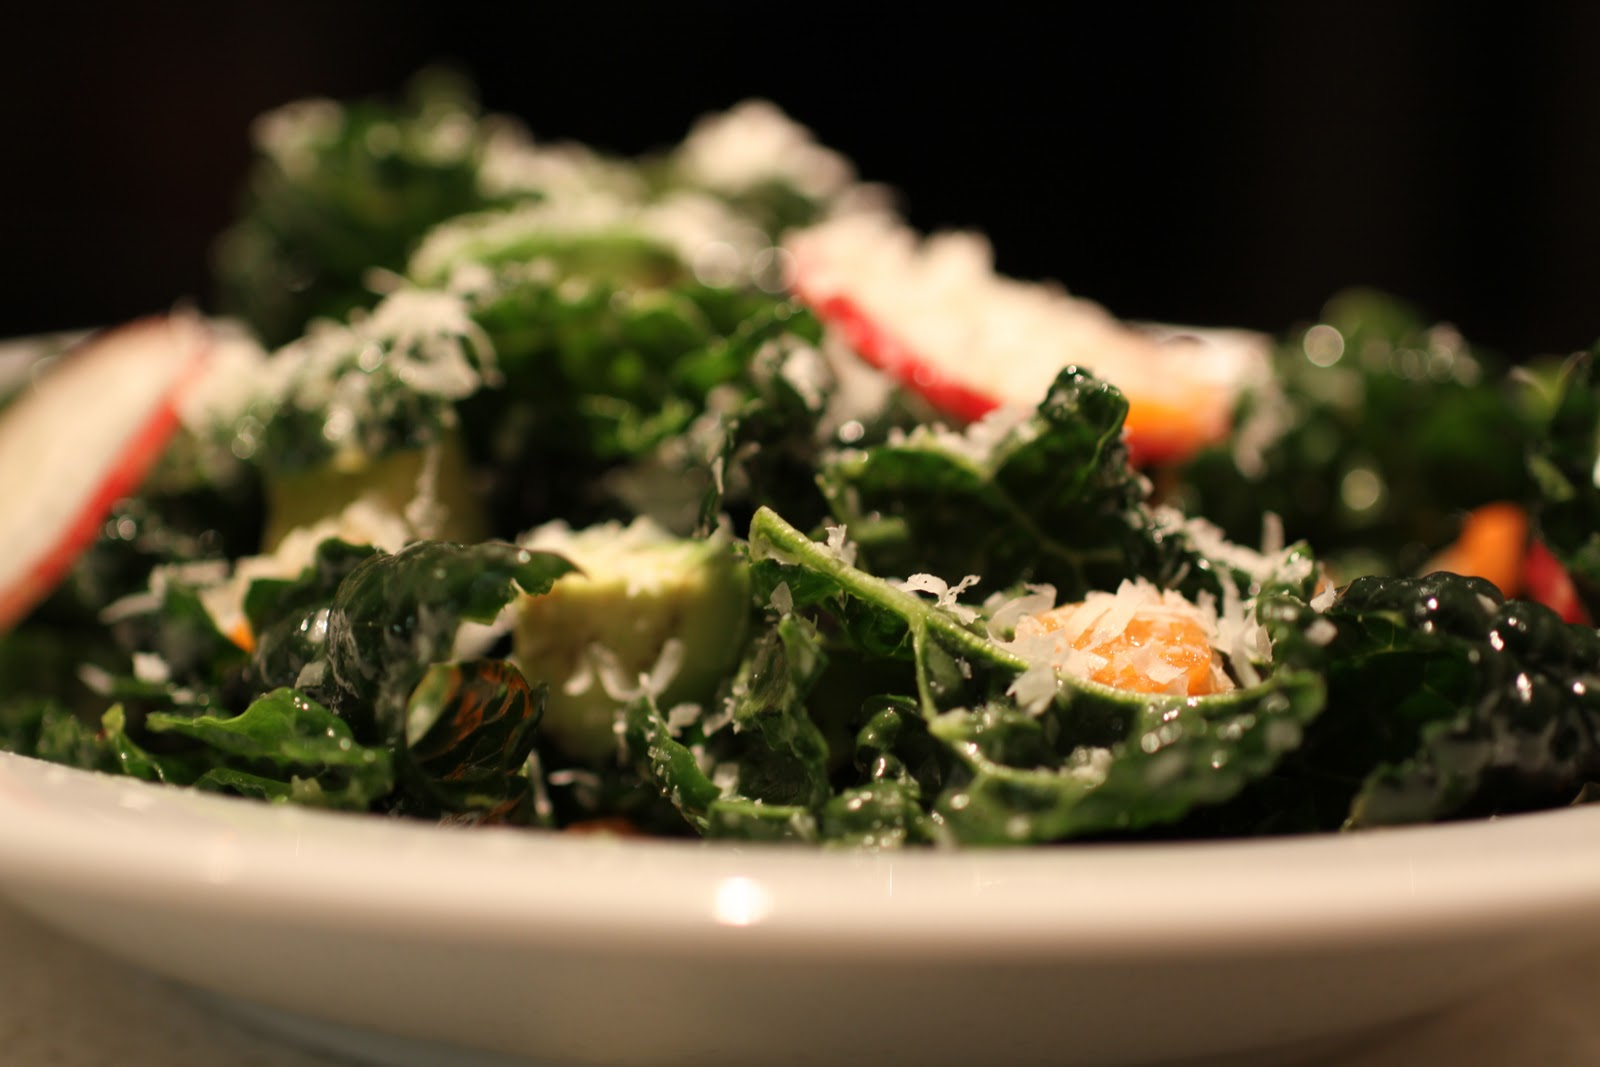 Raw kale good for you